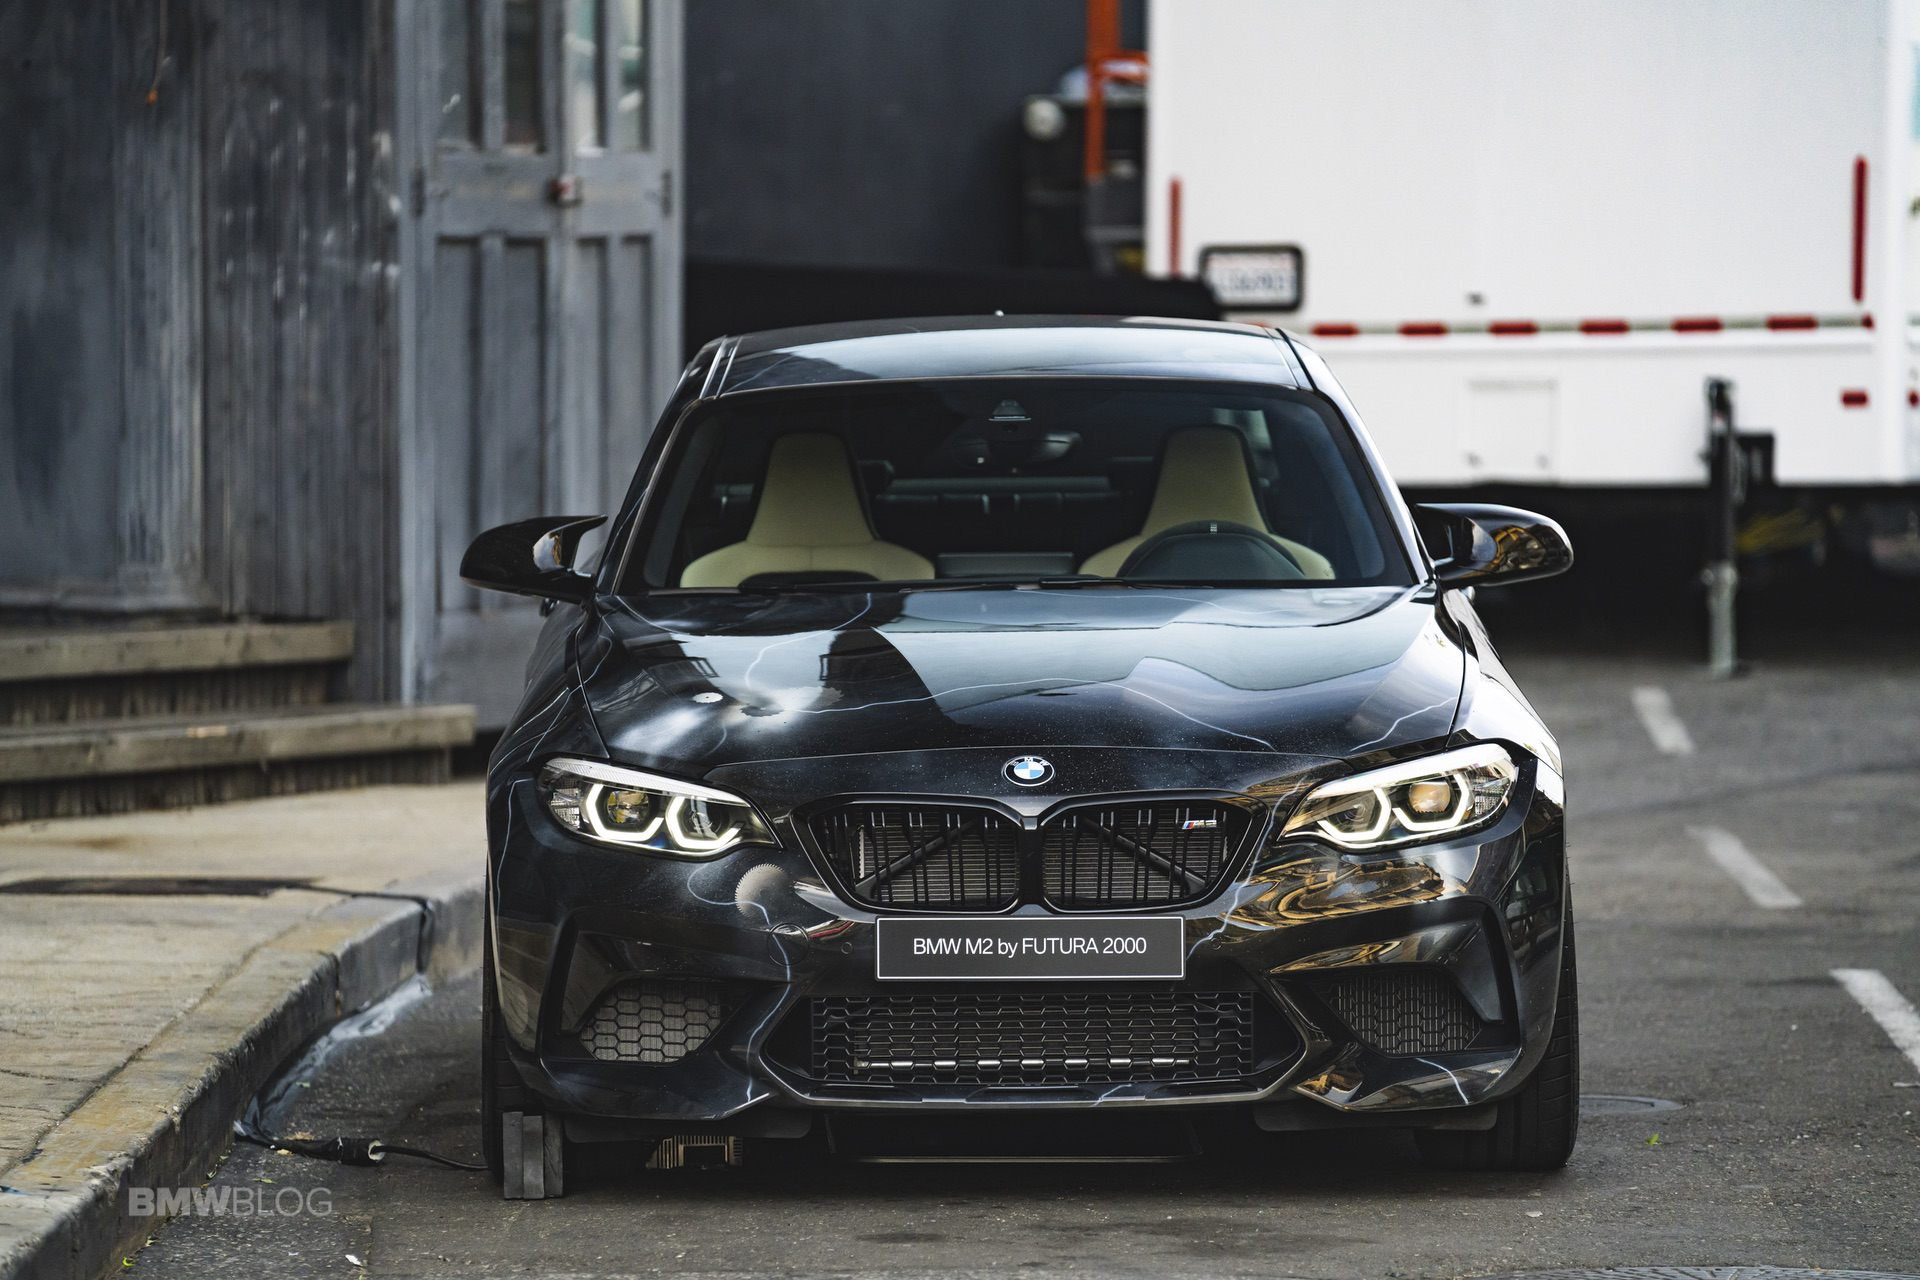 BMW M2 Competition by FUTURA - SEE EXCLUSIVE PHOTOS